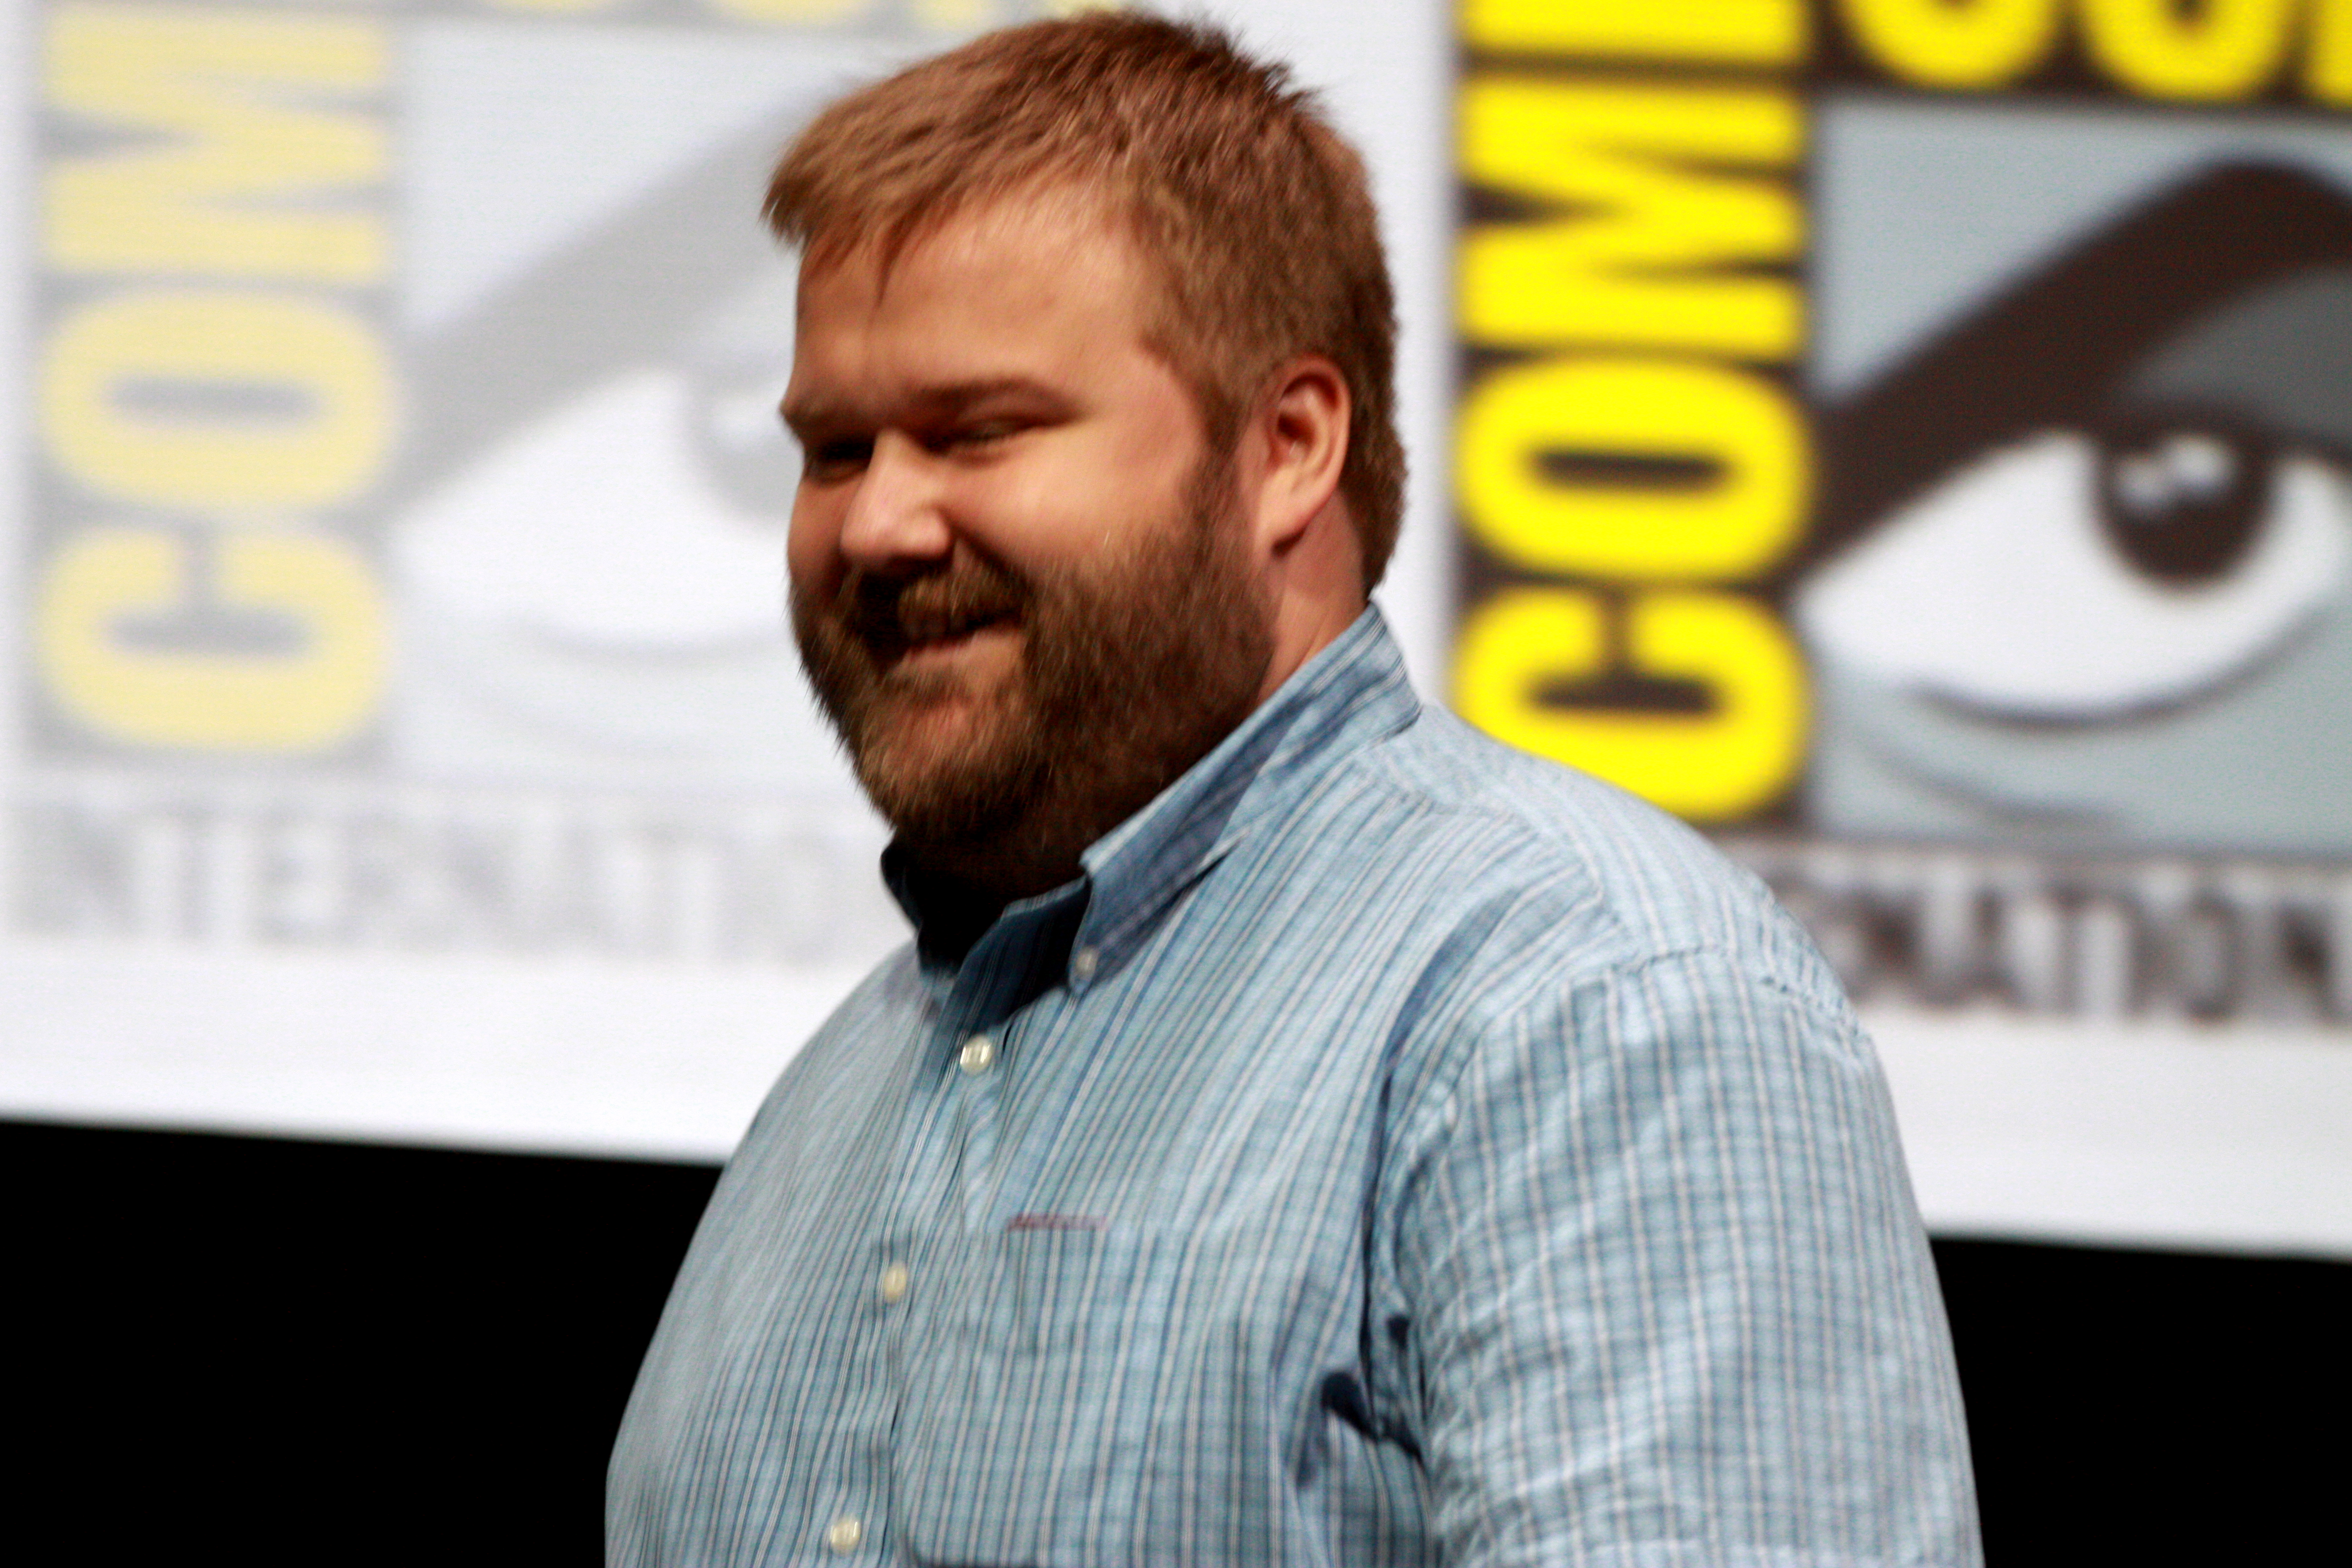 robert kirkman amberrobert kirkman amber, robert kirkman outcast, robert kirkman's the walking dead, robert kirkman height, robert kirkman wiki, robert kirkman imdb, robert kirkman books, robert kirkman instagram, robert kirkman comics, robert kirkman walking dead, robert kirkman twitter, robert kirkman abraham, robert kirkman goodreads, robert kirkman autograph, robert kirkman money, robert kirkman contact info